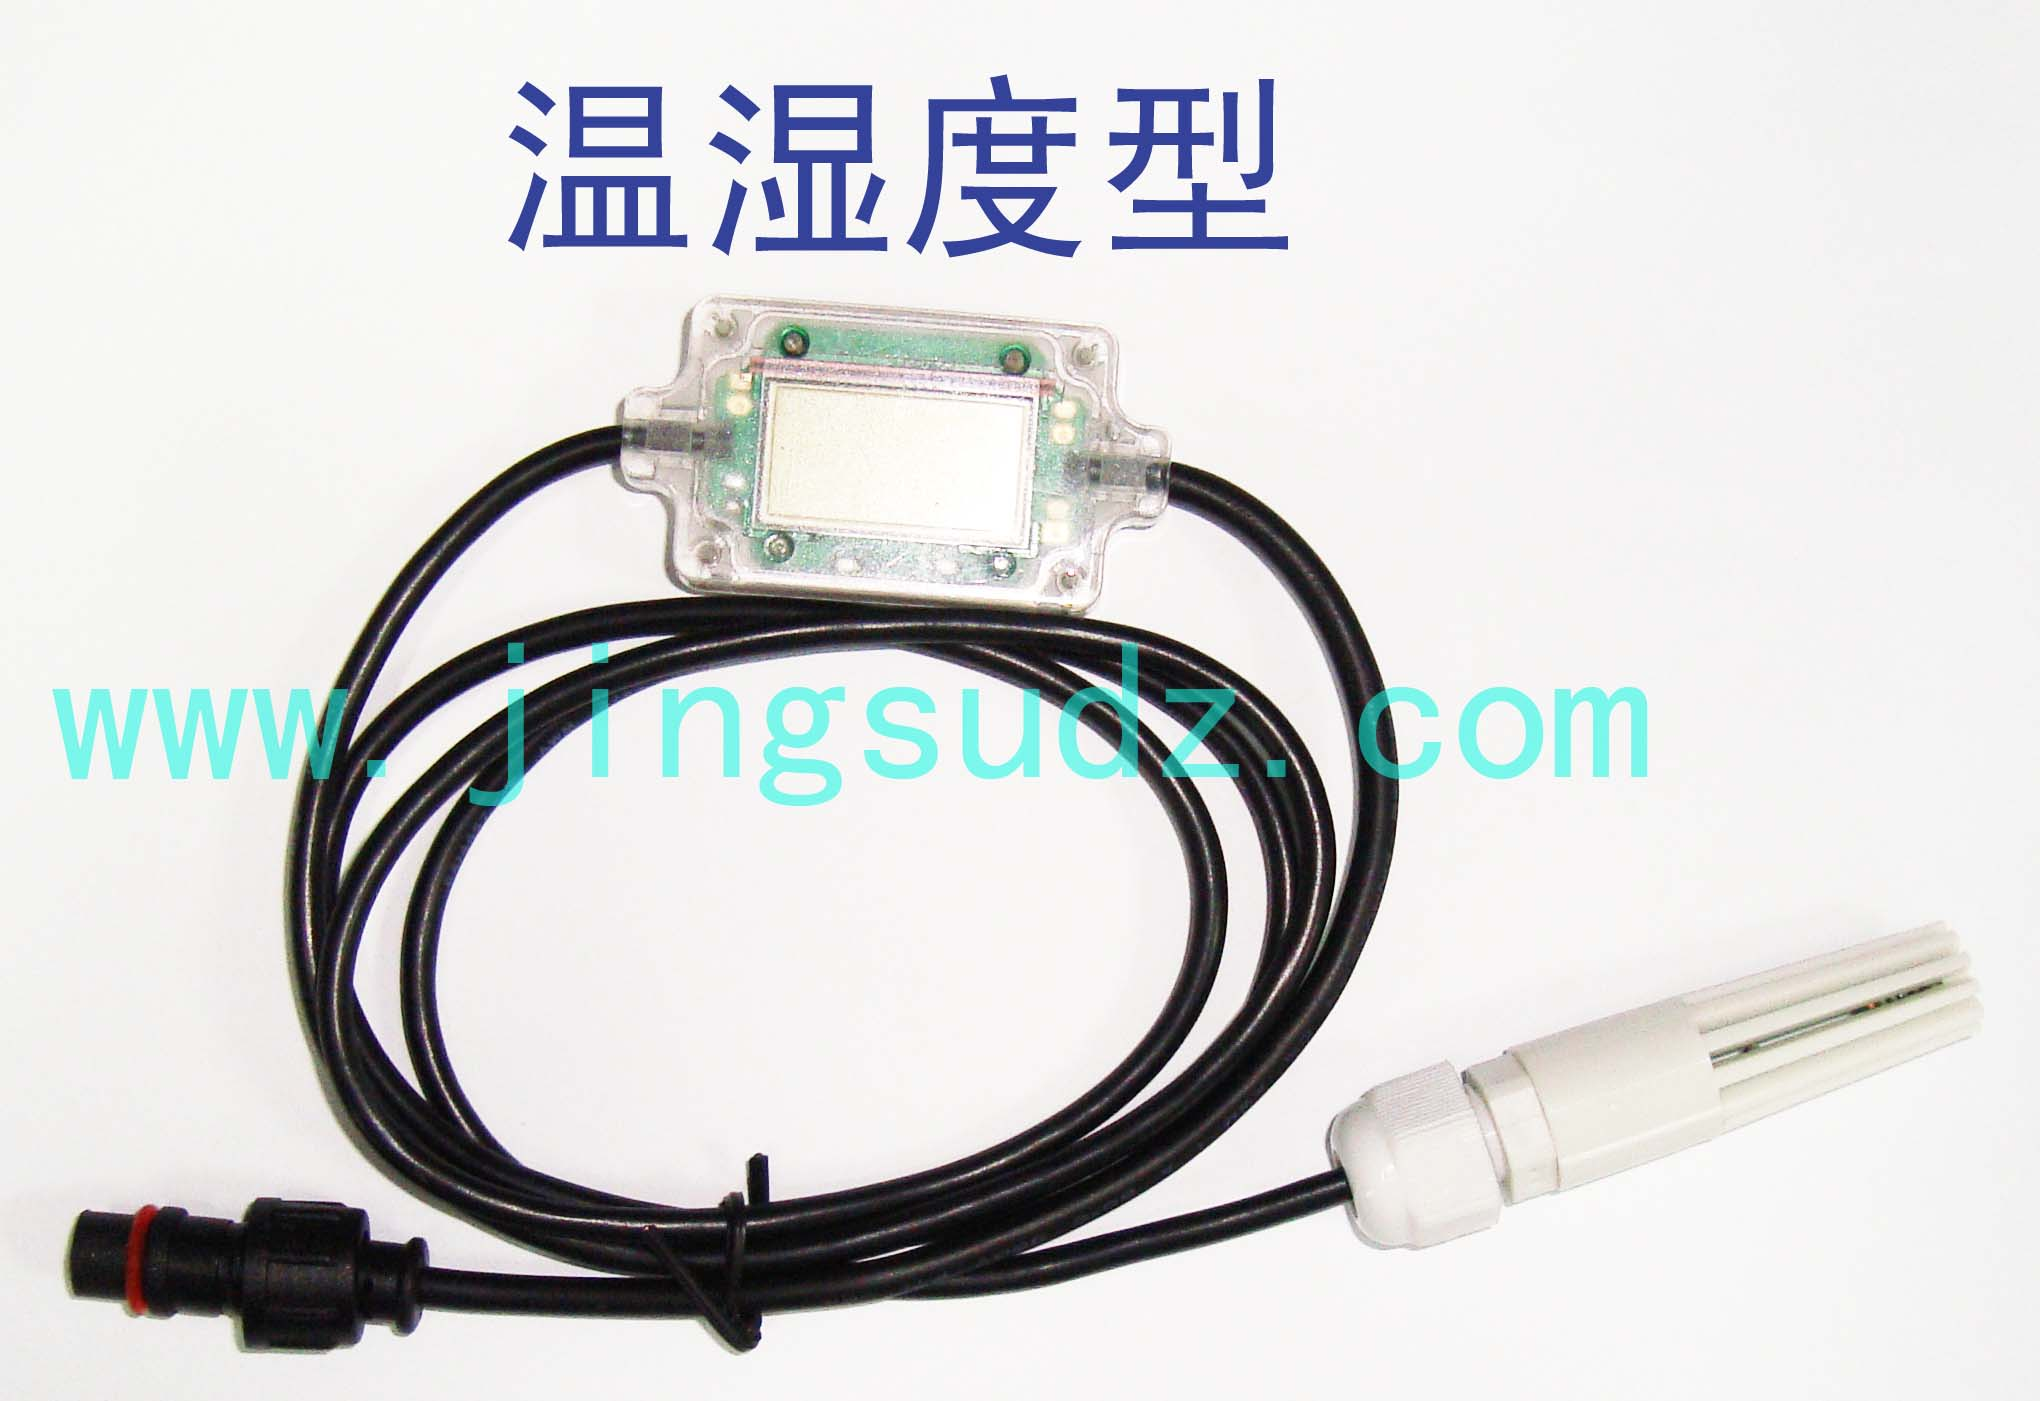 MODBUS standard protocol SHT10 RS485 to RSDS6 interface temperature and humidity sensor transmitter sht10 sht11 sht15 sht20 sht21 sht25 optional soil temperature and humidity sensor probe humiditytemperature sensor 1 meter